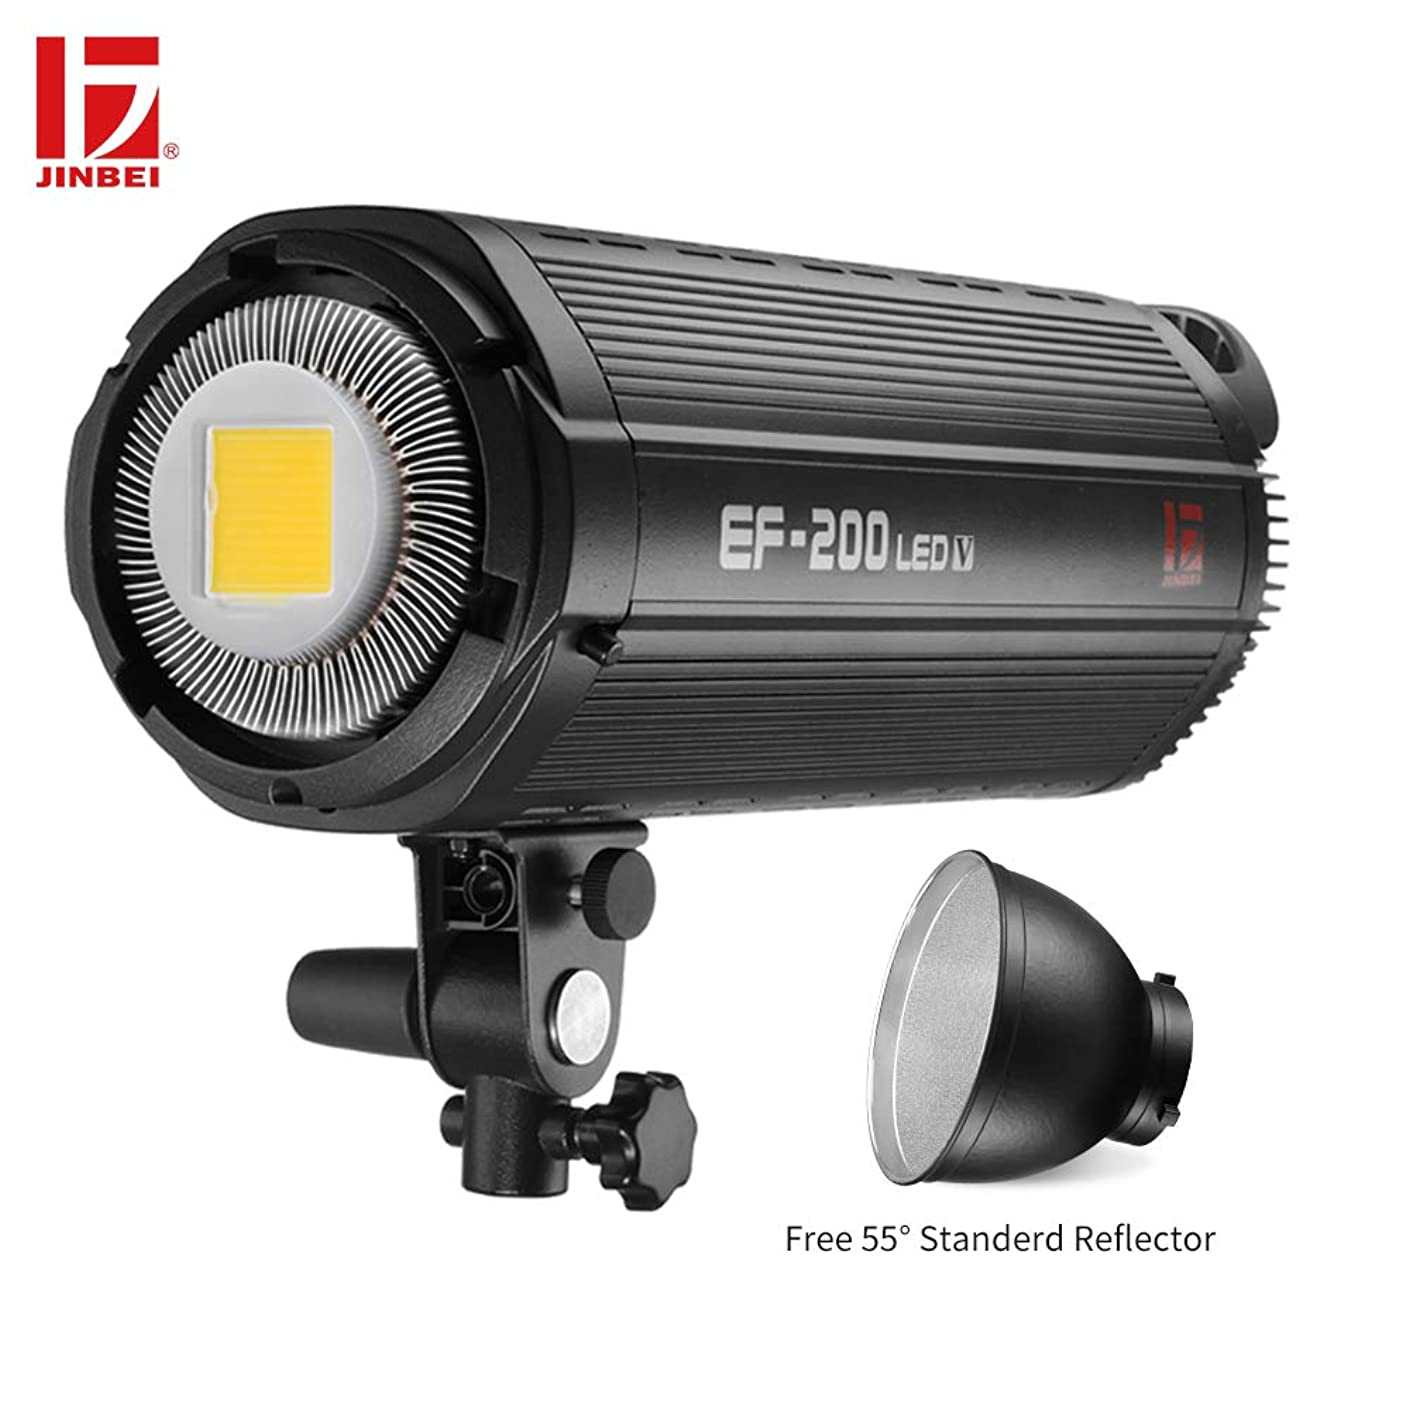 JINBEI EF-200 200Ws Dimmable LED Video Light Continuous Lamp with Bowens Mount Daylight Balanced Video Light 5500K for YouTube Vine Portrait Photography Video Lighting Studio Interview RA 95+